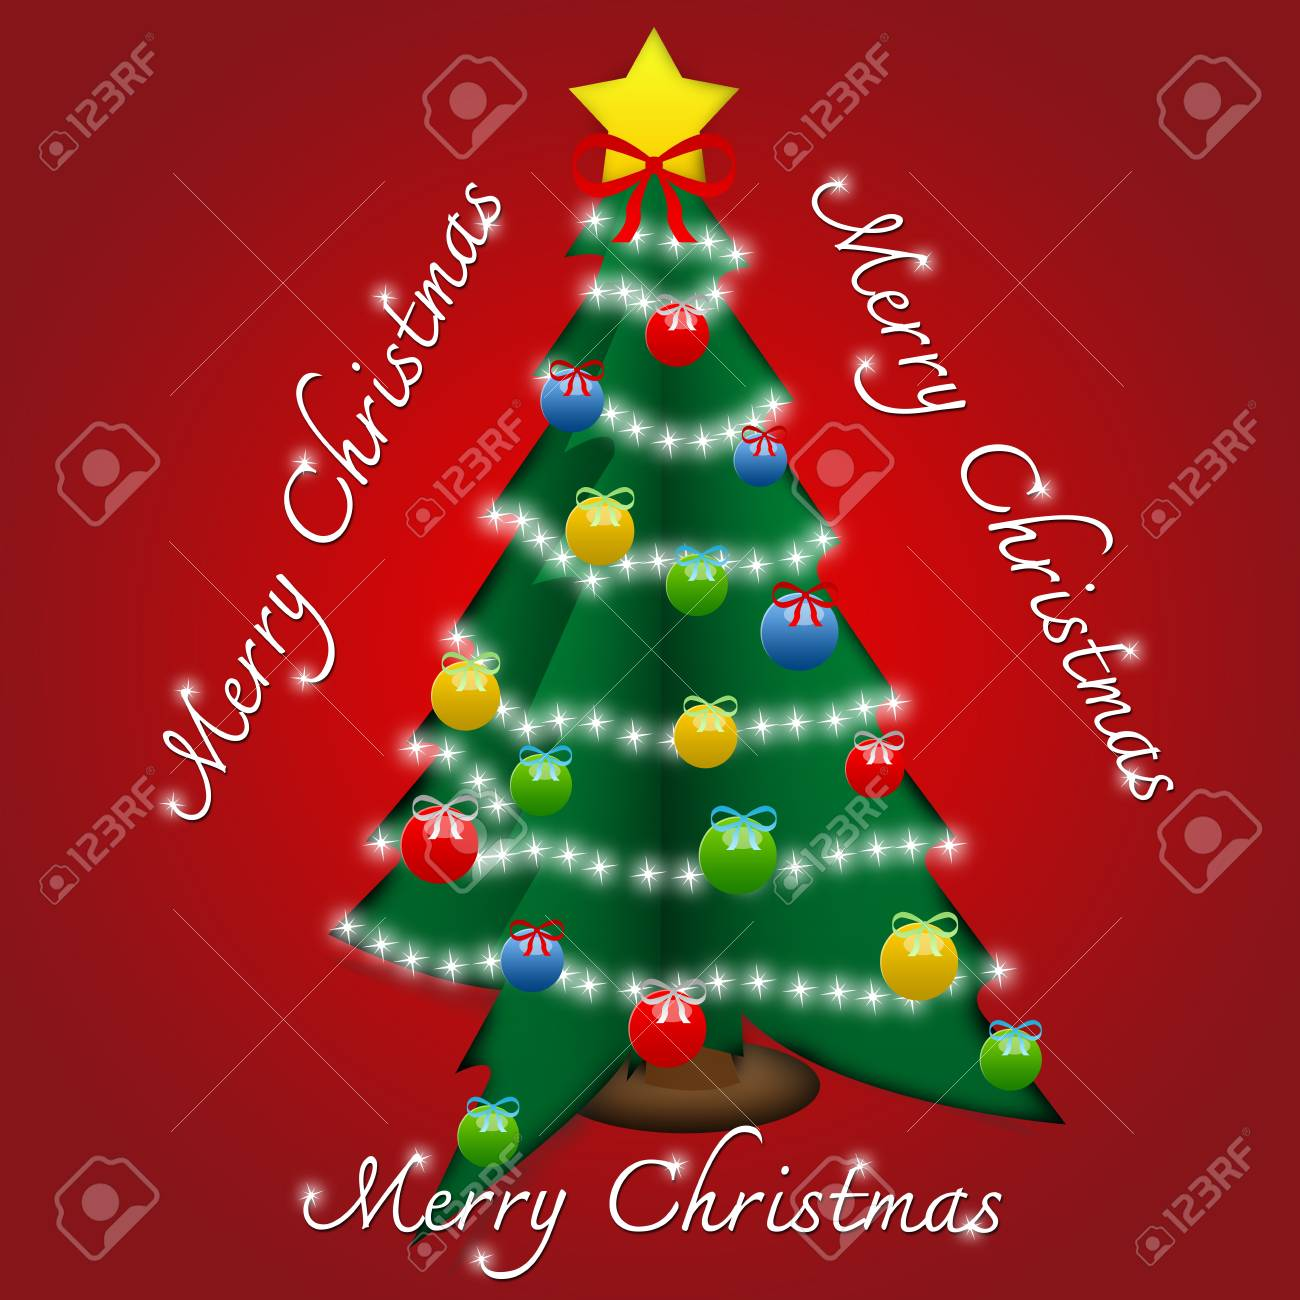 Beautiful Pop Up Merry Christmas Card With Christmas Tree And